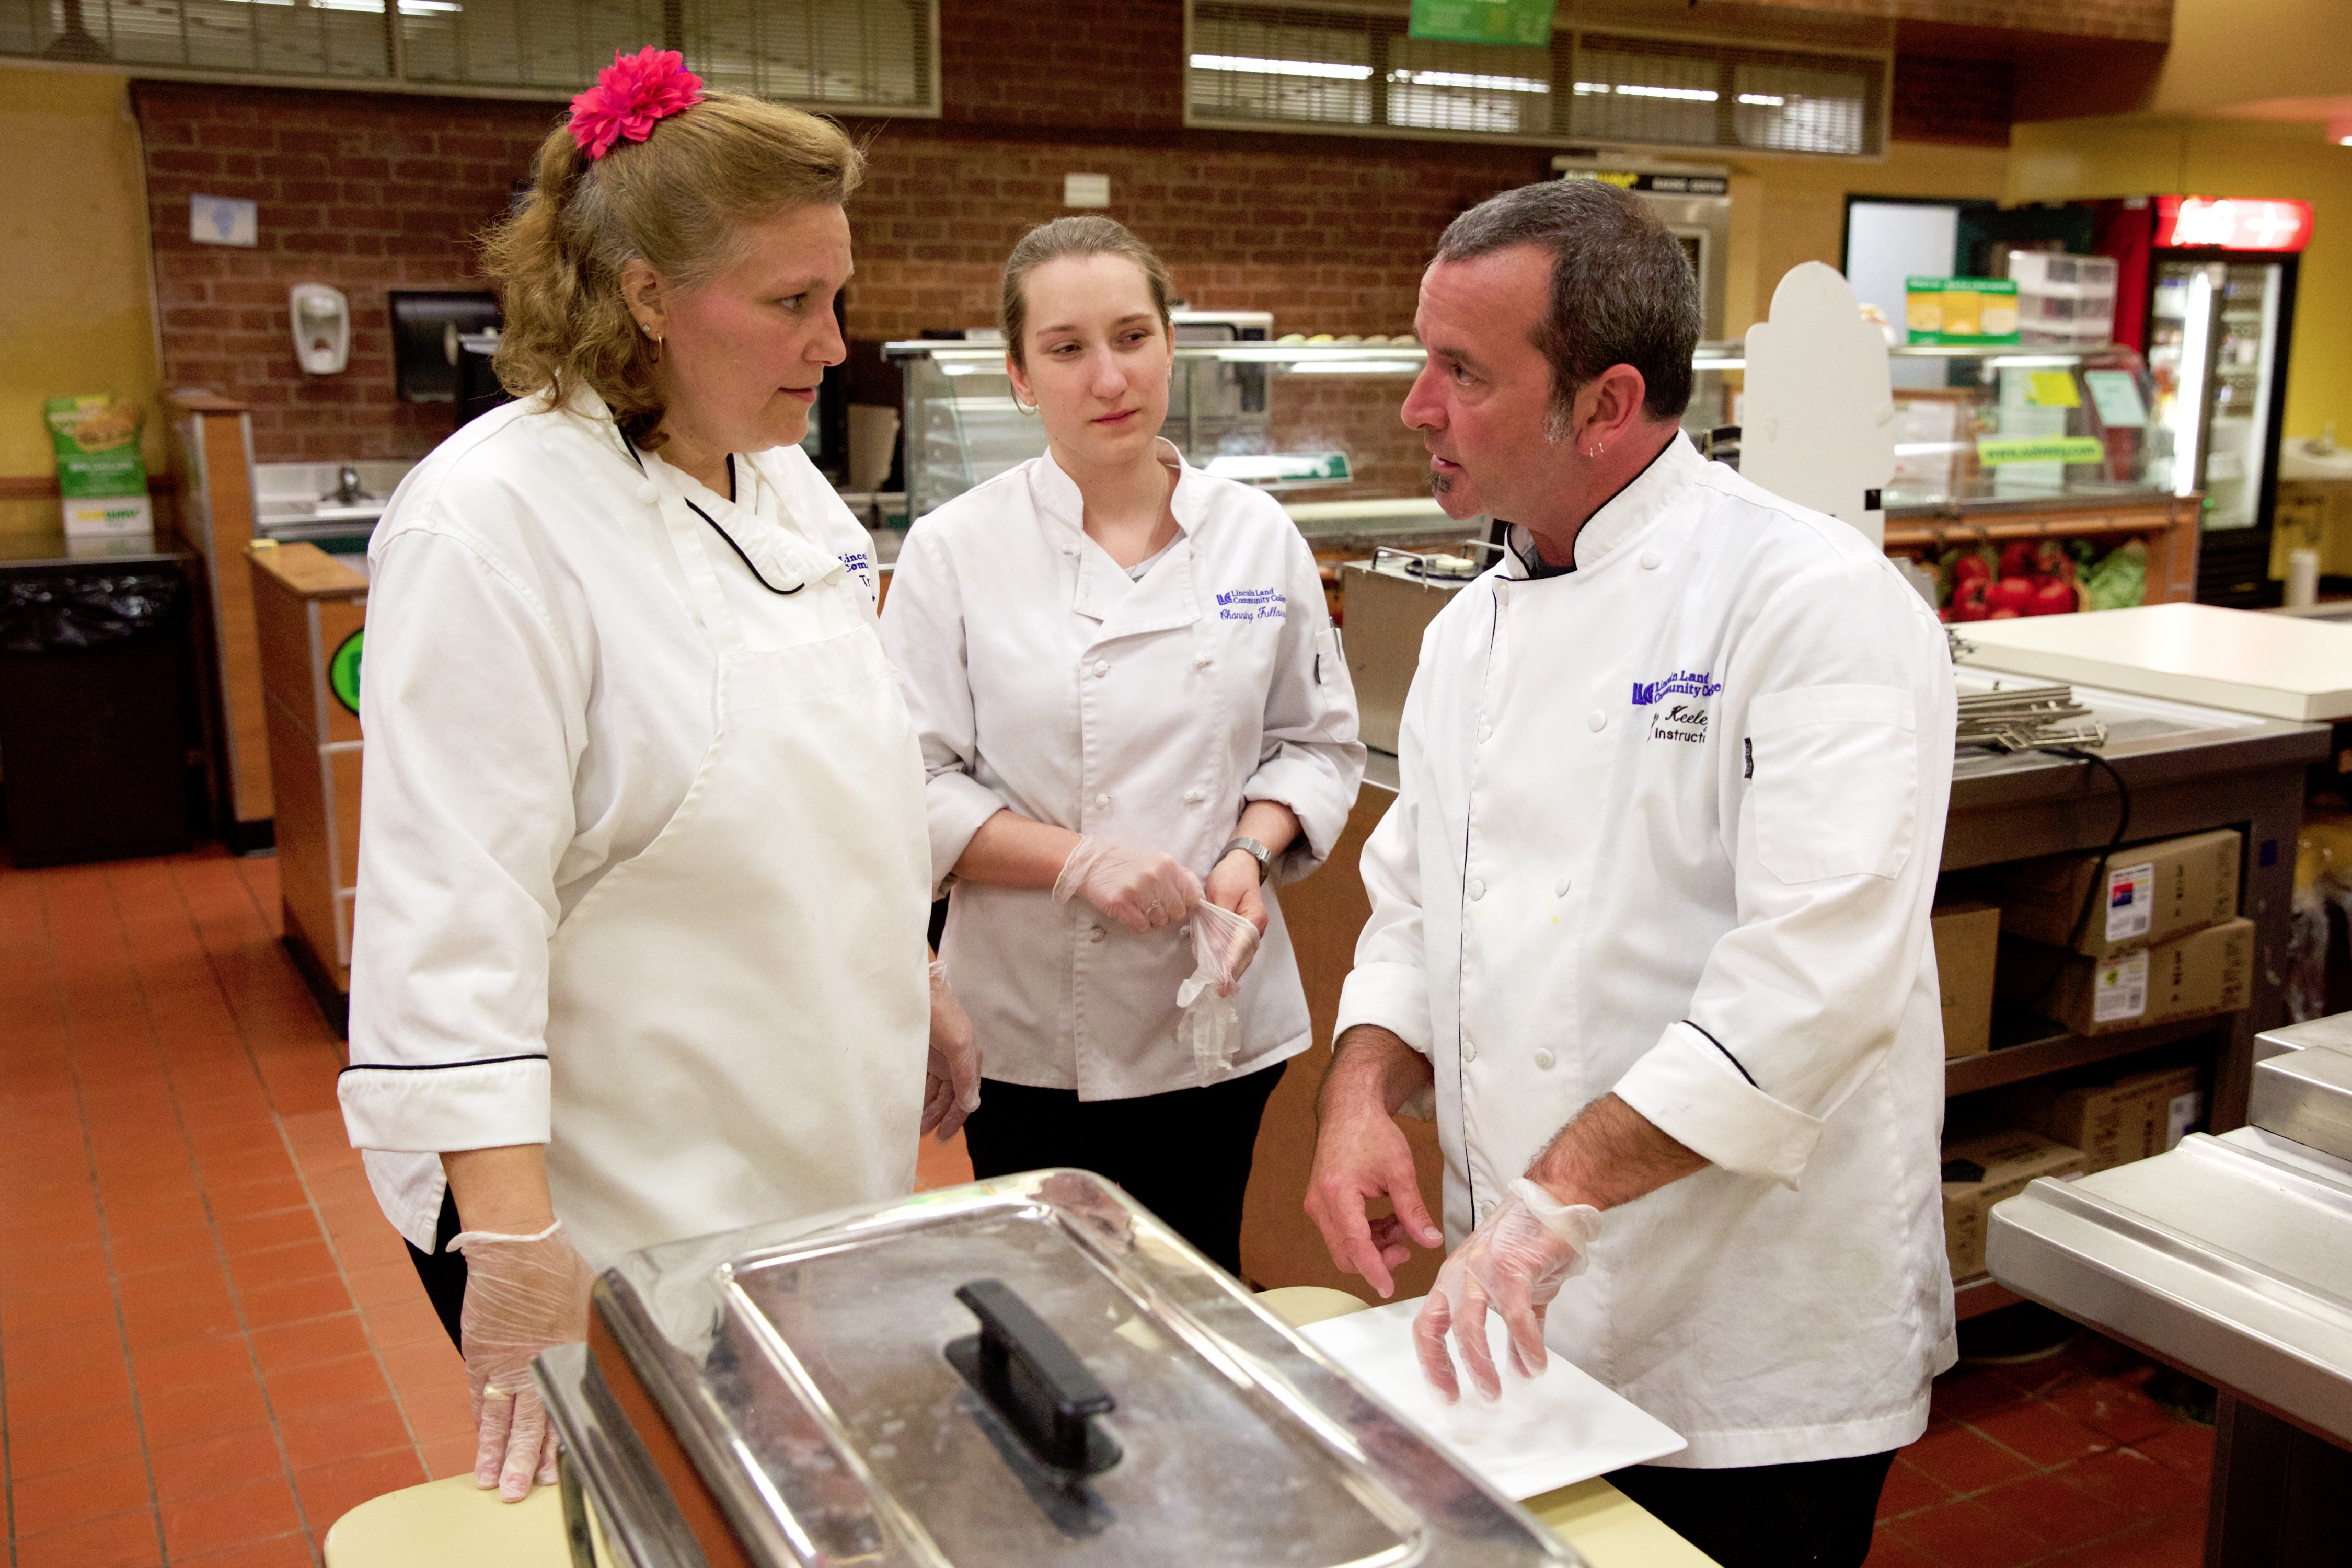 Chef Sean Keeley instructs Culinary students